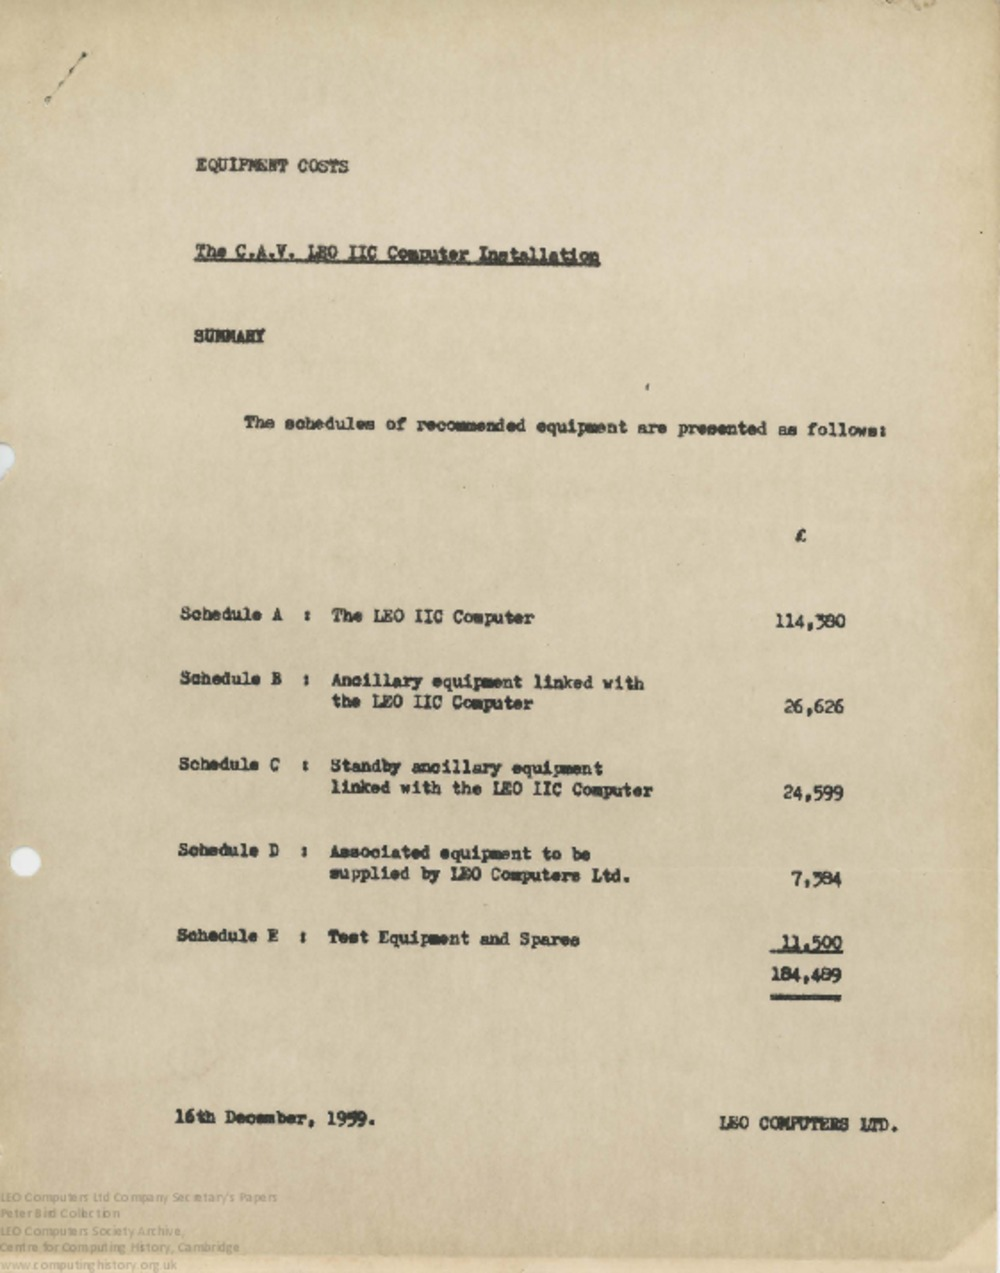 Article: 62465  Schedule of Equipment Costs (Quotation) for LEO II installation at CAV, 16 Dec 1959